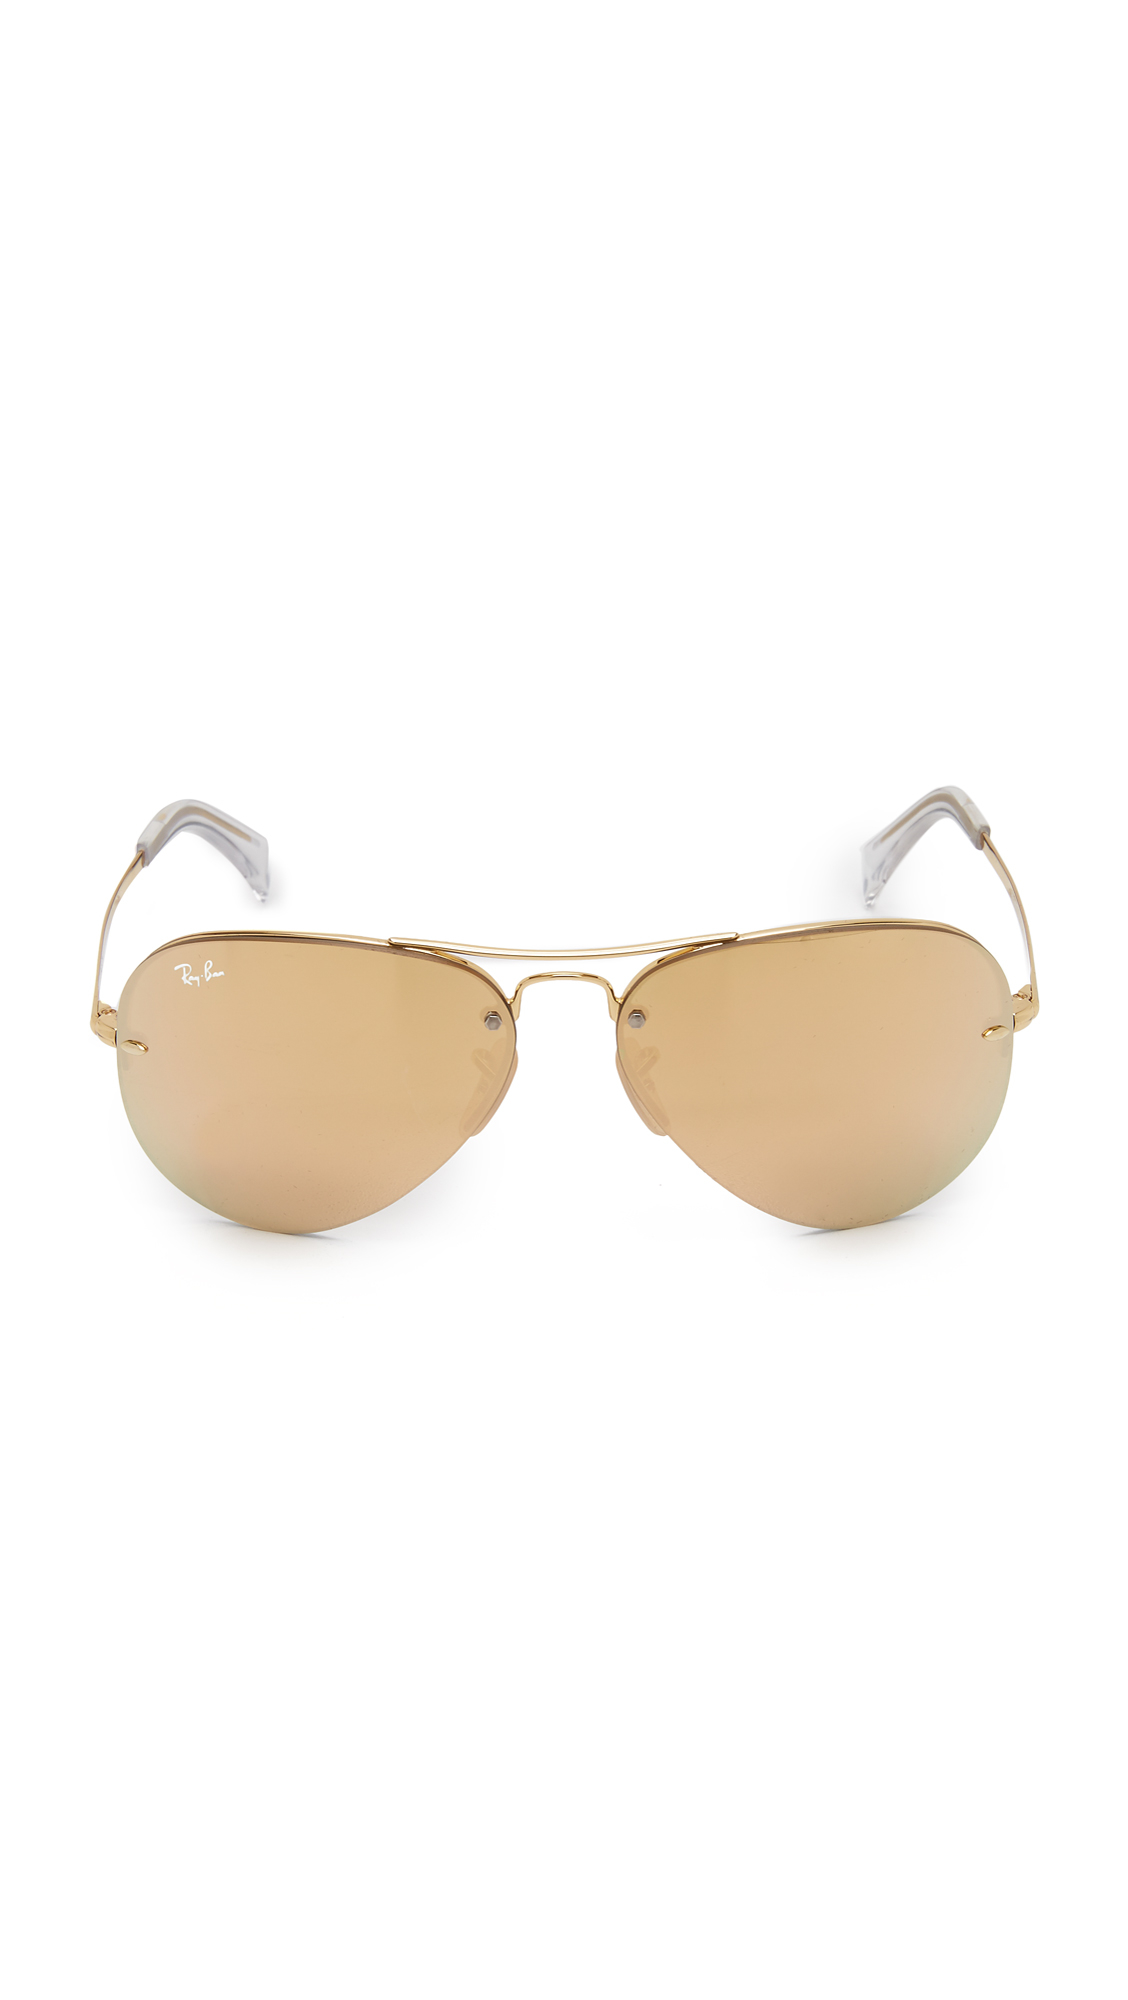 mirrored womens sunglasses yy1f  Gallery Previously sold at: Shopbop 路 Women's Mirrored Sunglasses